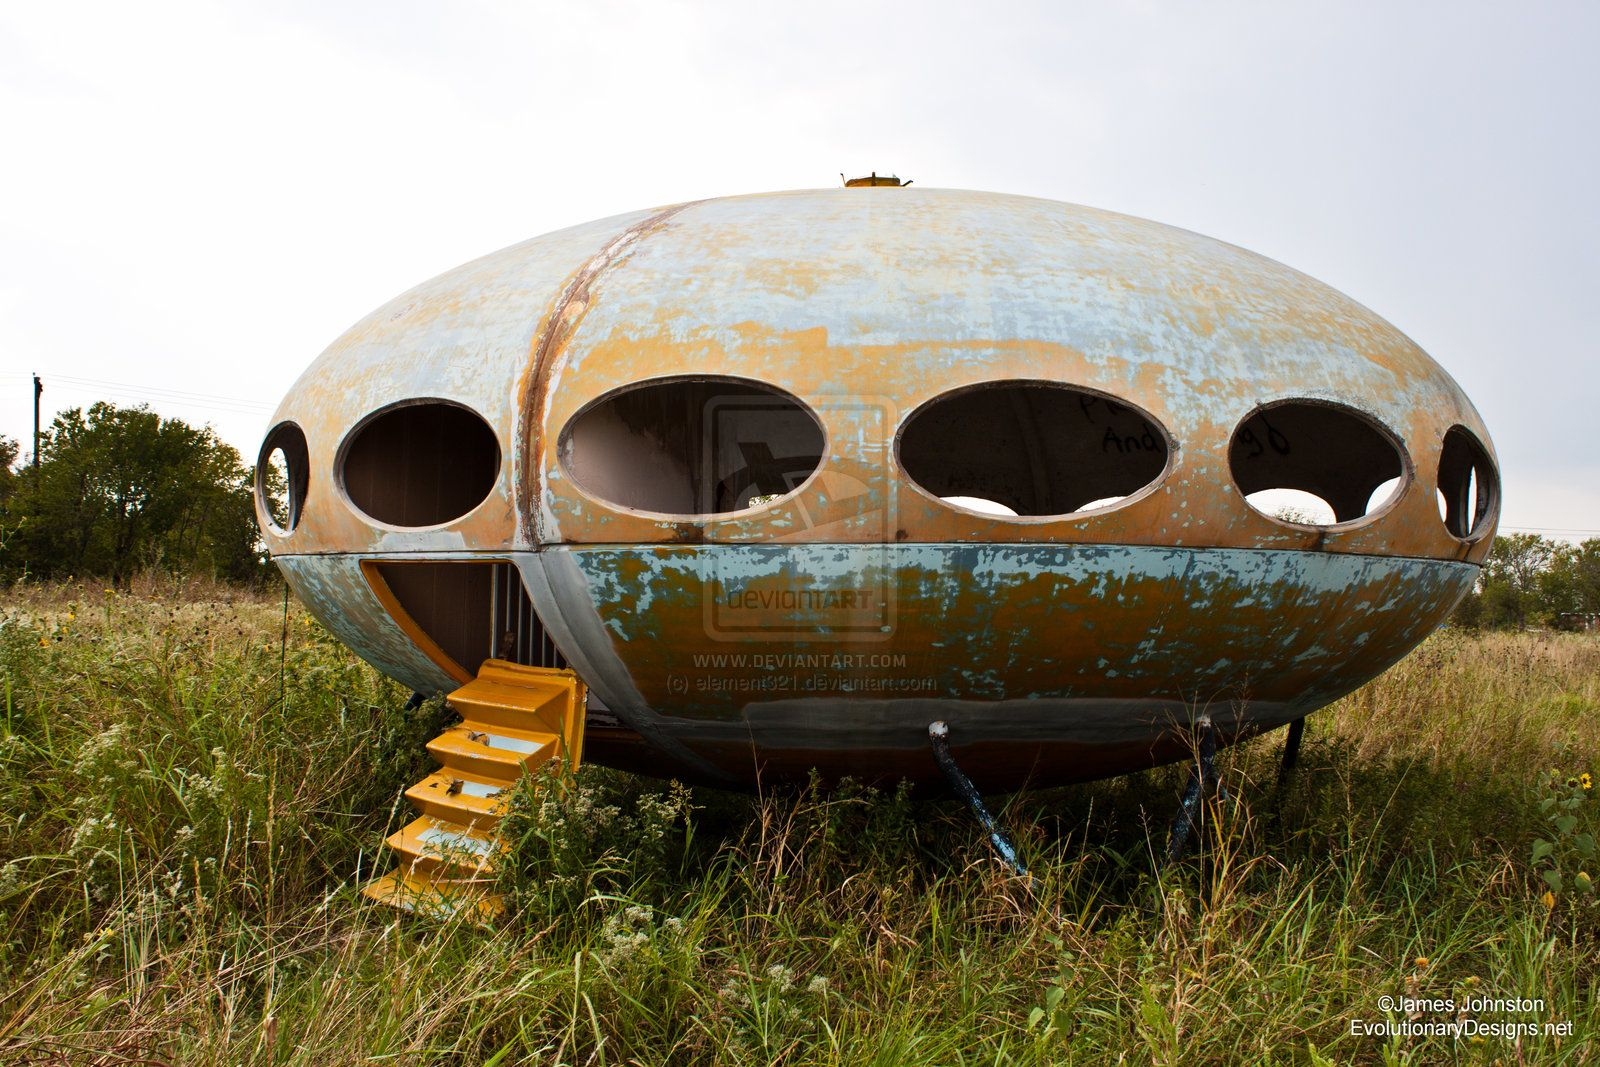 Abandoned futuro house in royse city texas oh my gosh i have totally been